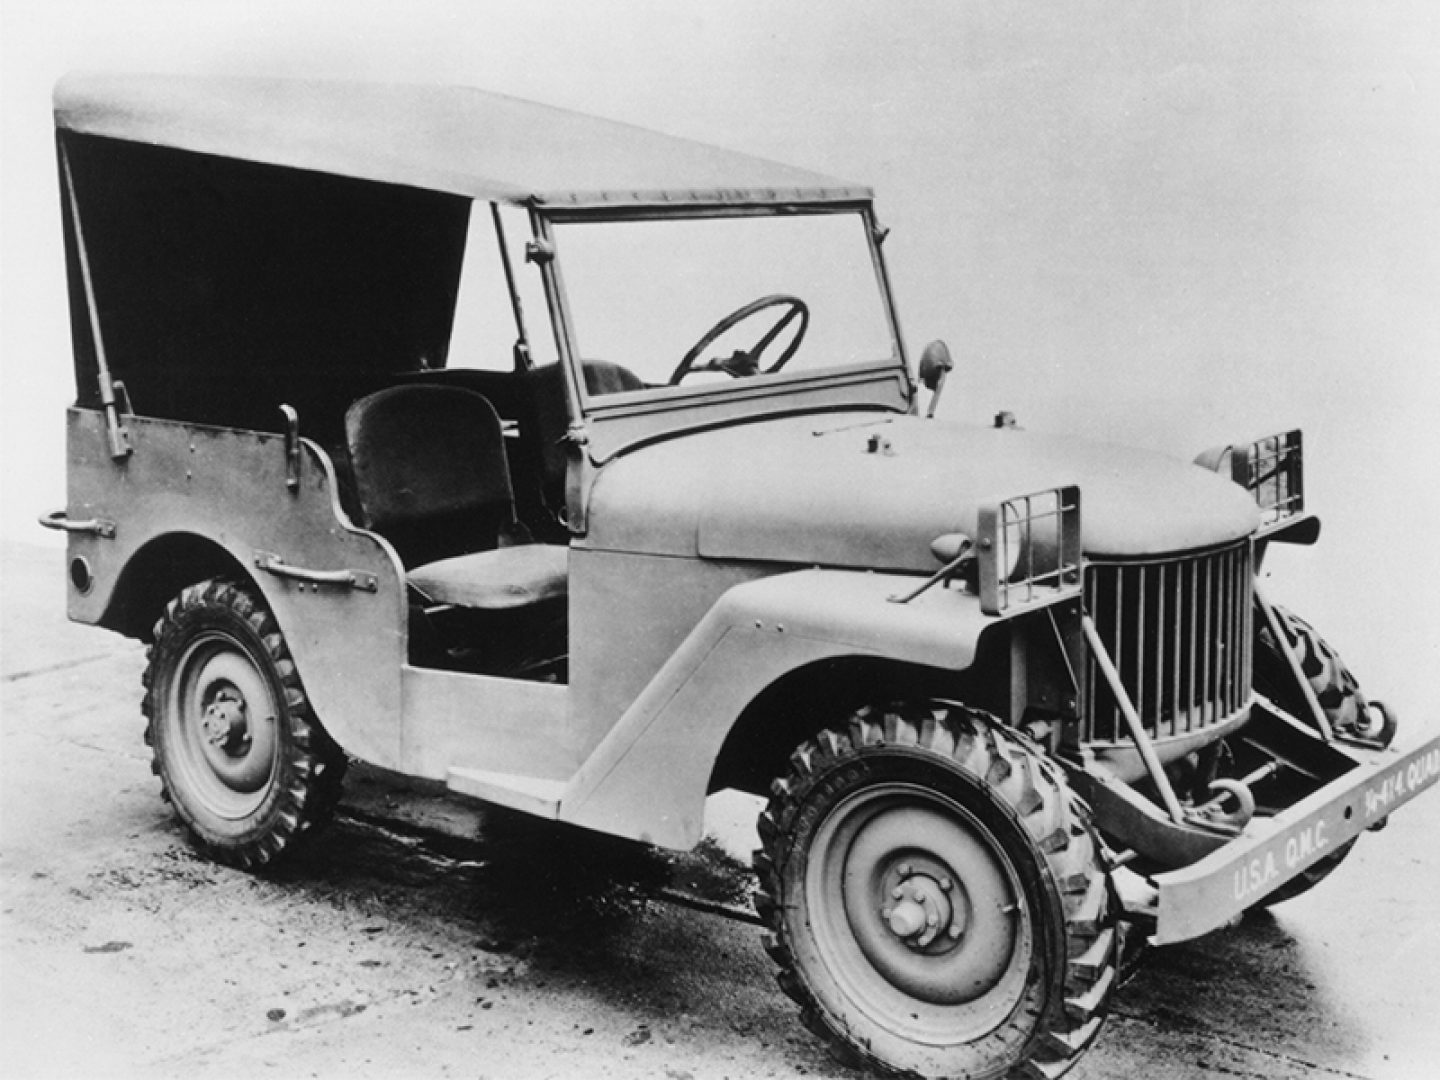 Jeep® History - Discover Jeep Brand History from 1940 to 1949